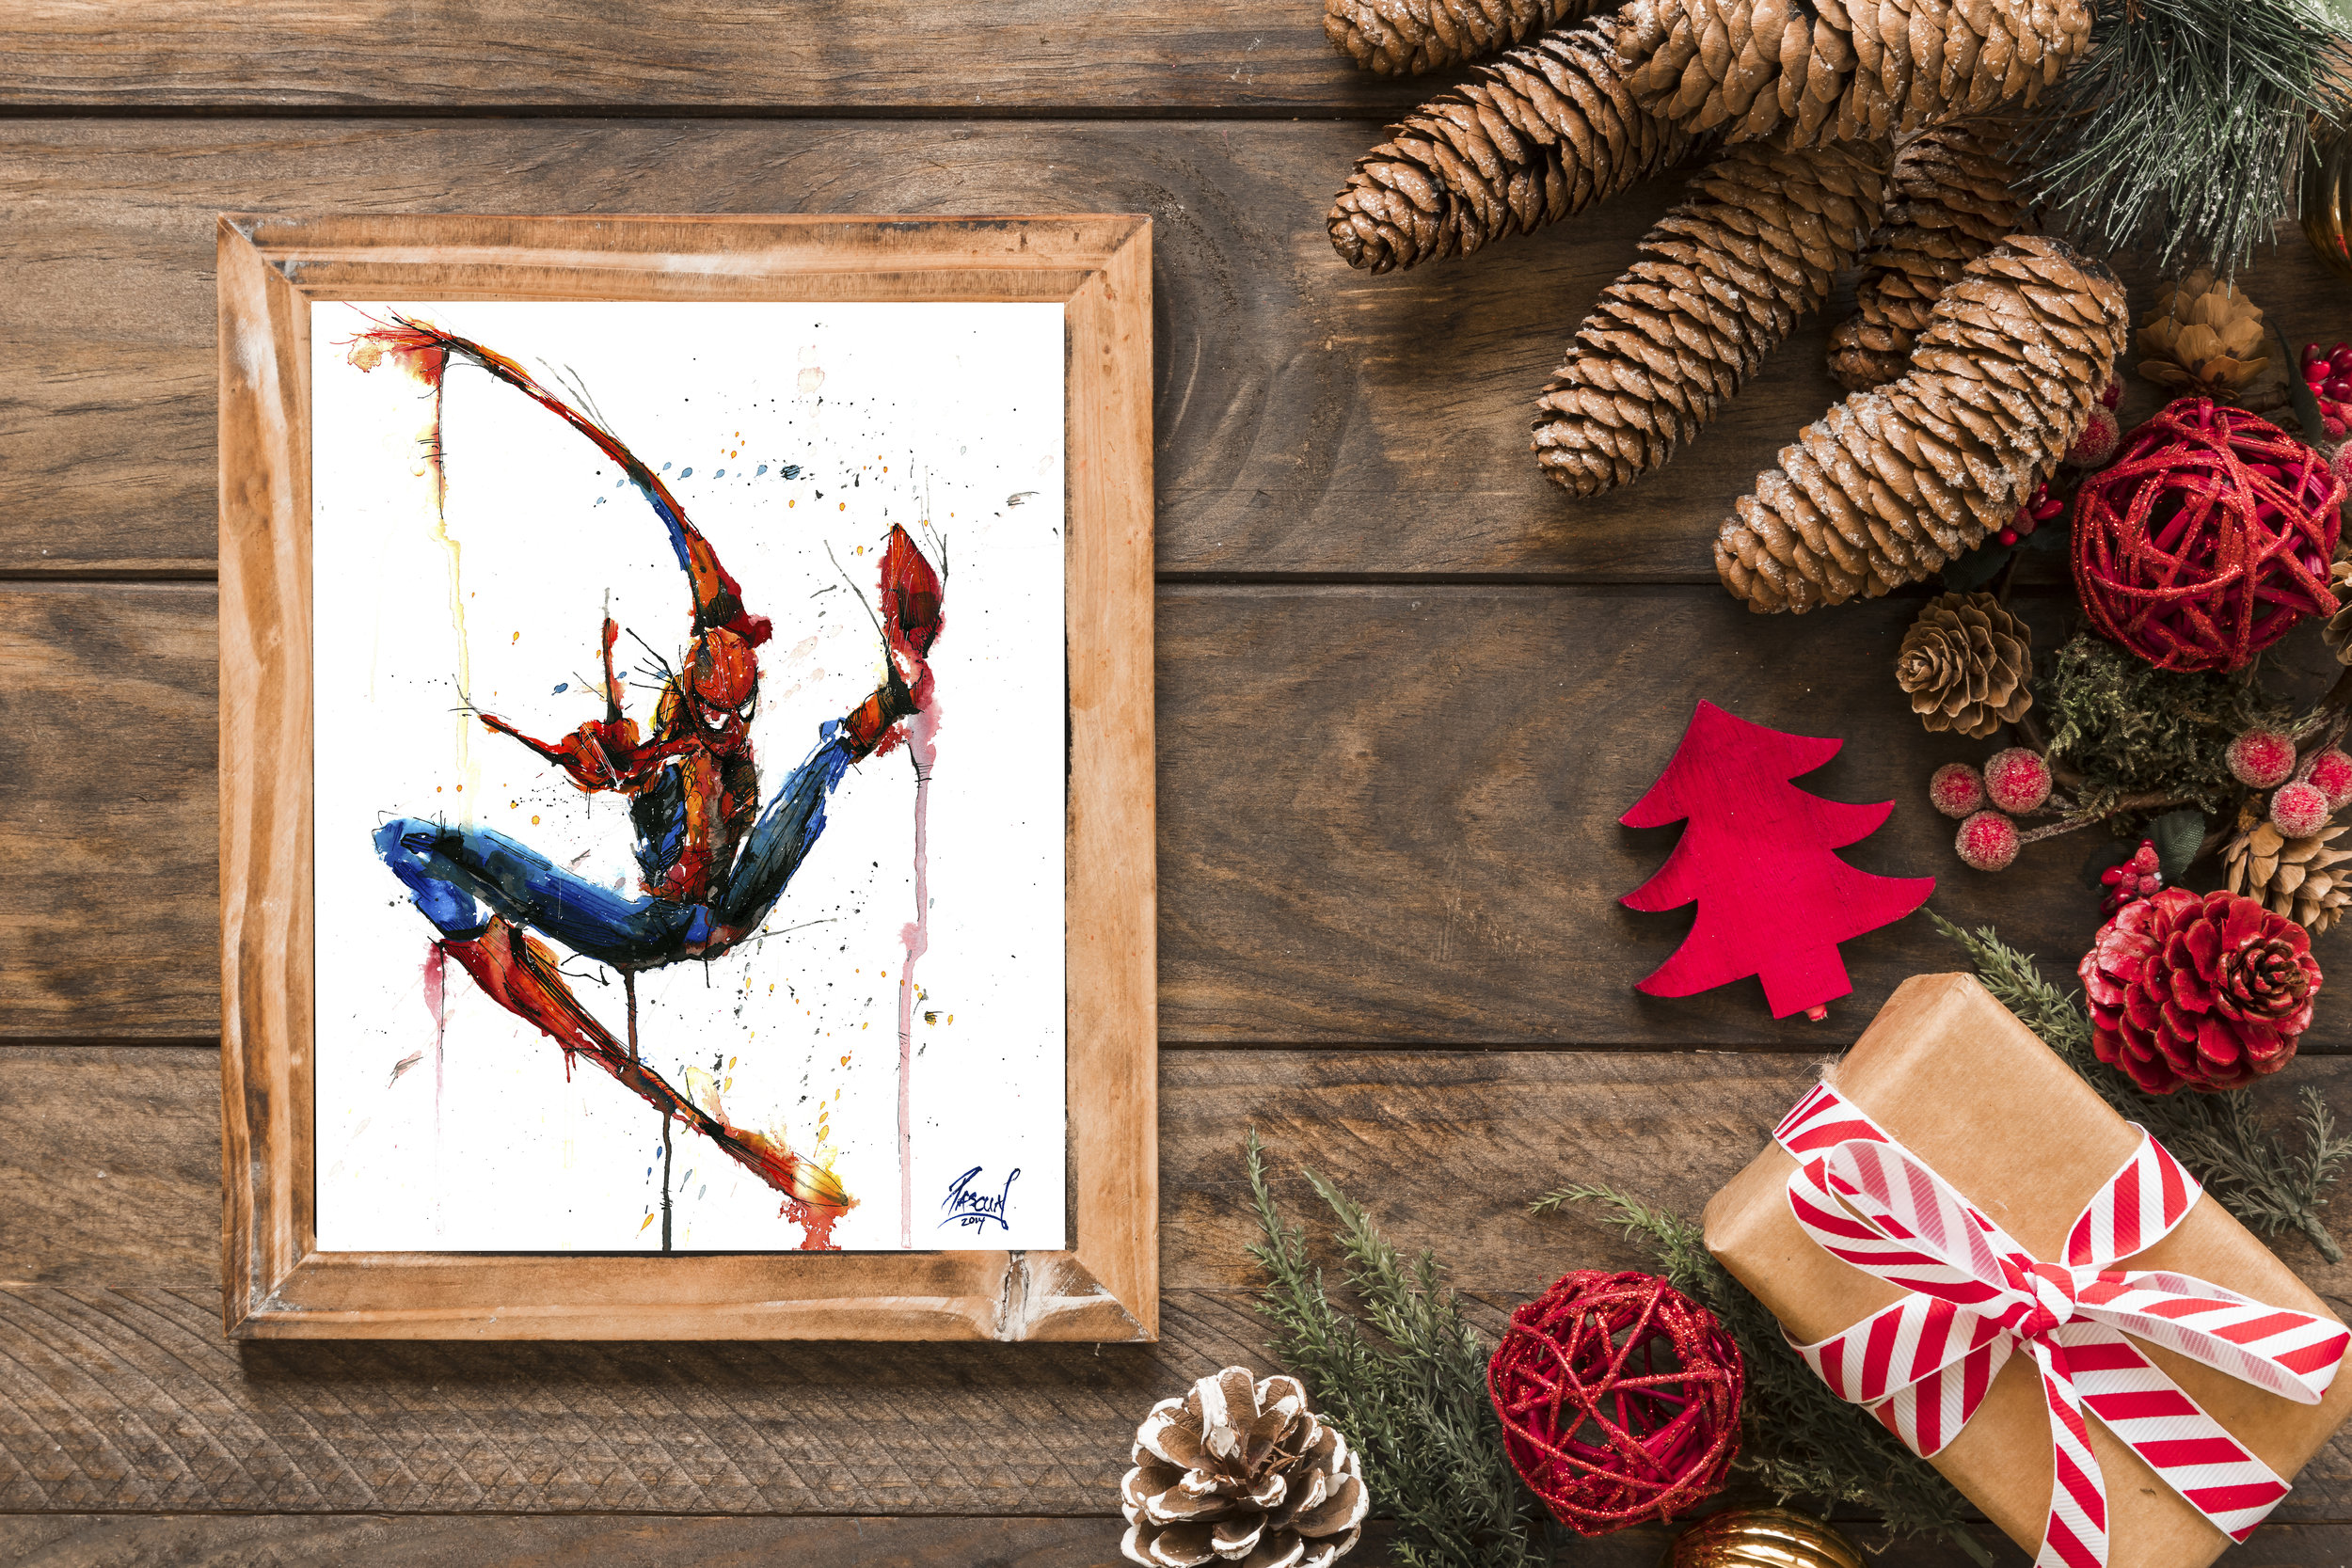 Watercolor Spiderman Print starting at $15 available  HERE   FUN FACT: In 2016, Geoff brought two of his Spider-Man prints to a Stan Lee signing - one to sign and one to give to Stan. Upon receiving a print, Stan got up from his chair to give Geoff a hand shake and complimented him on a job well done!